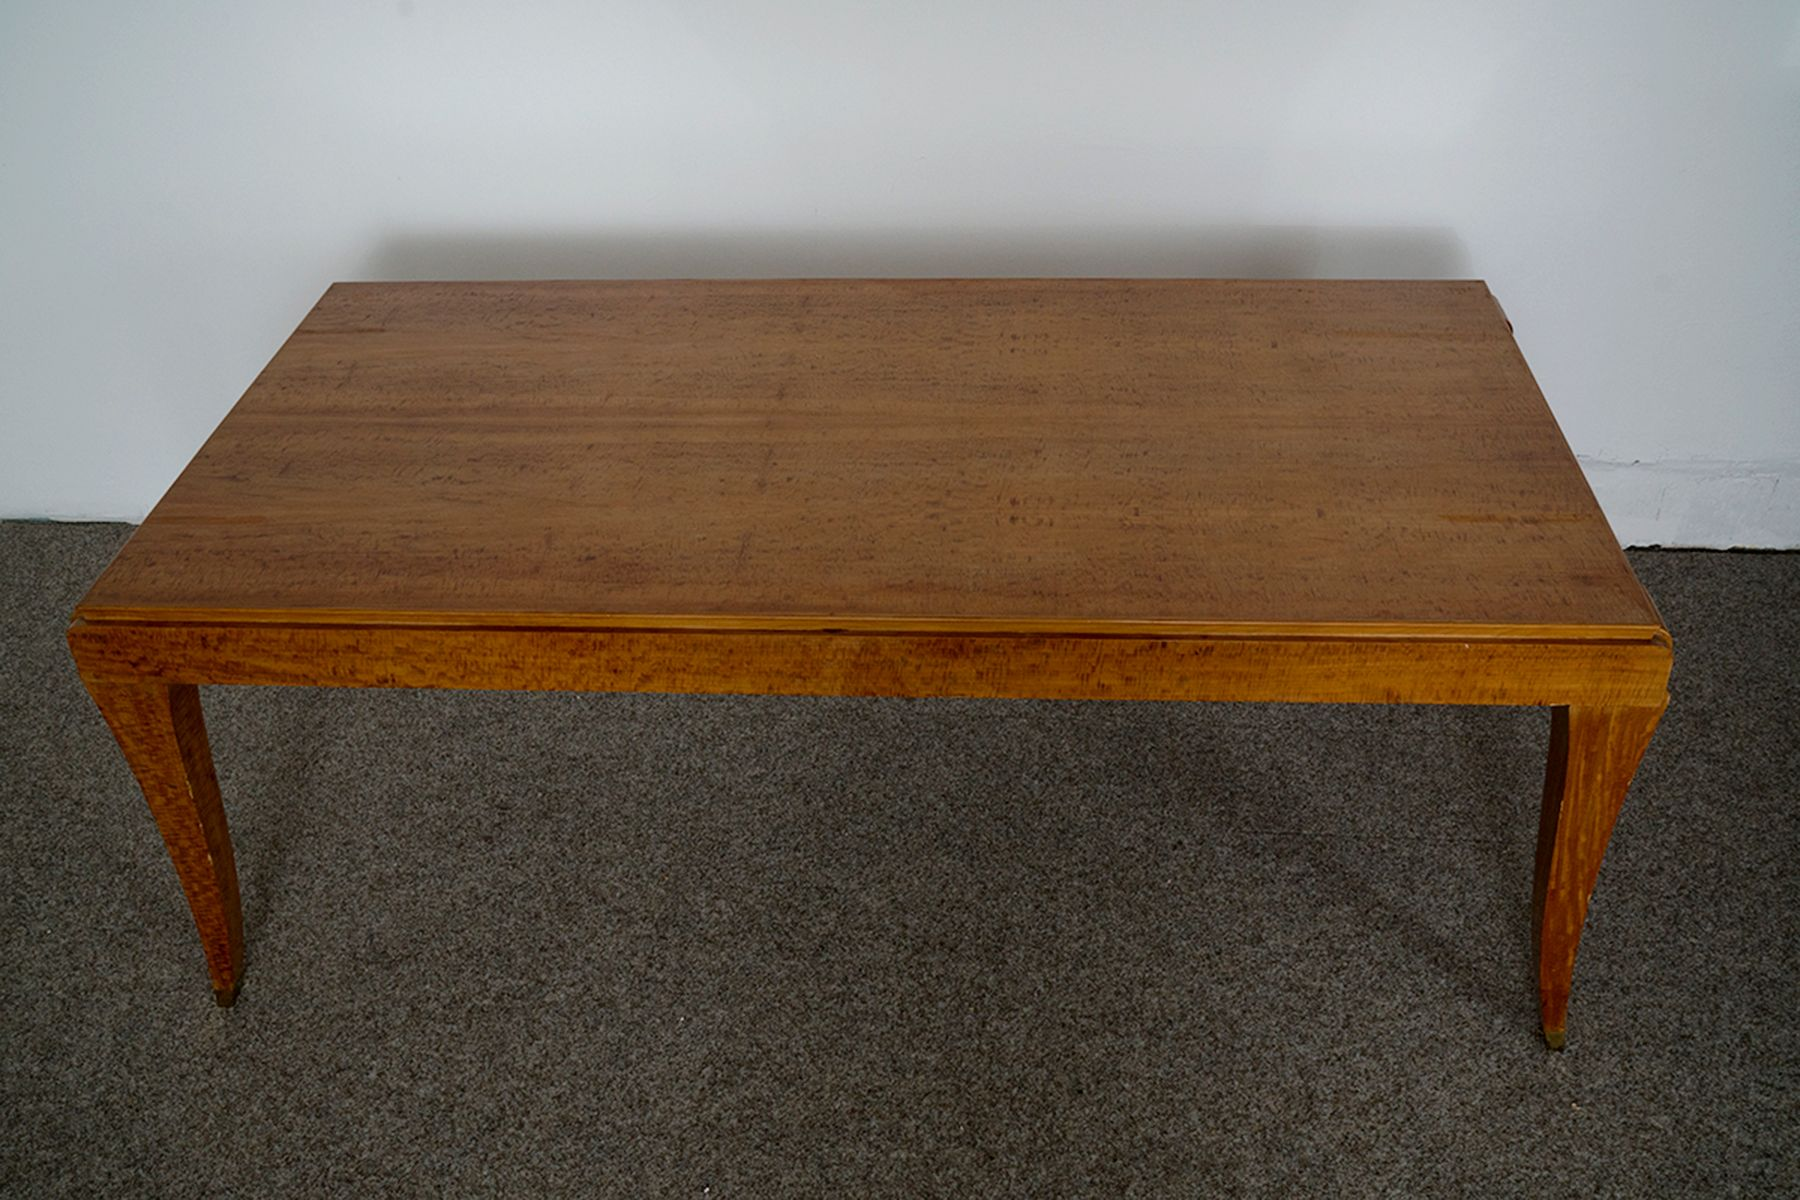 Vintage French Dining Table in Eucalyptus for sale at Pamono